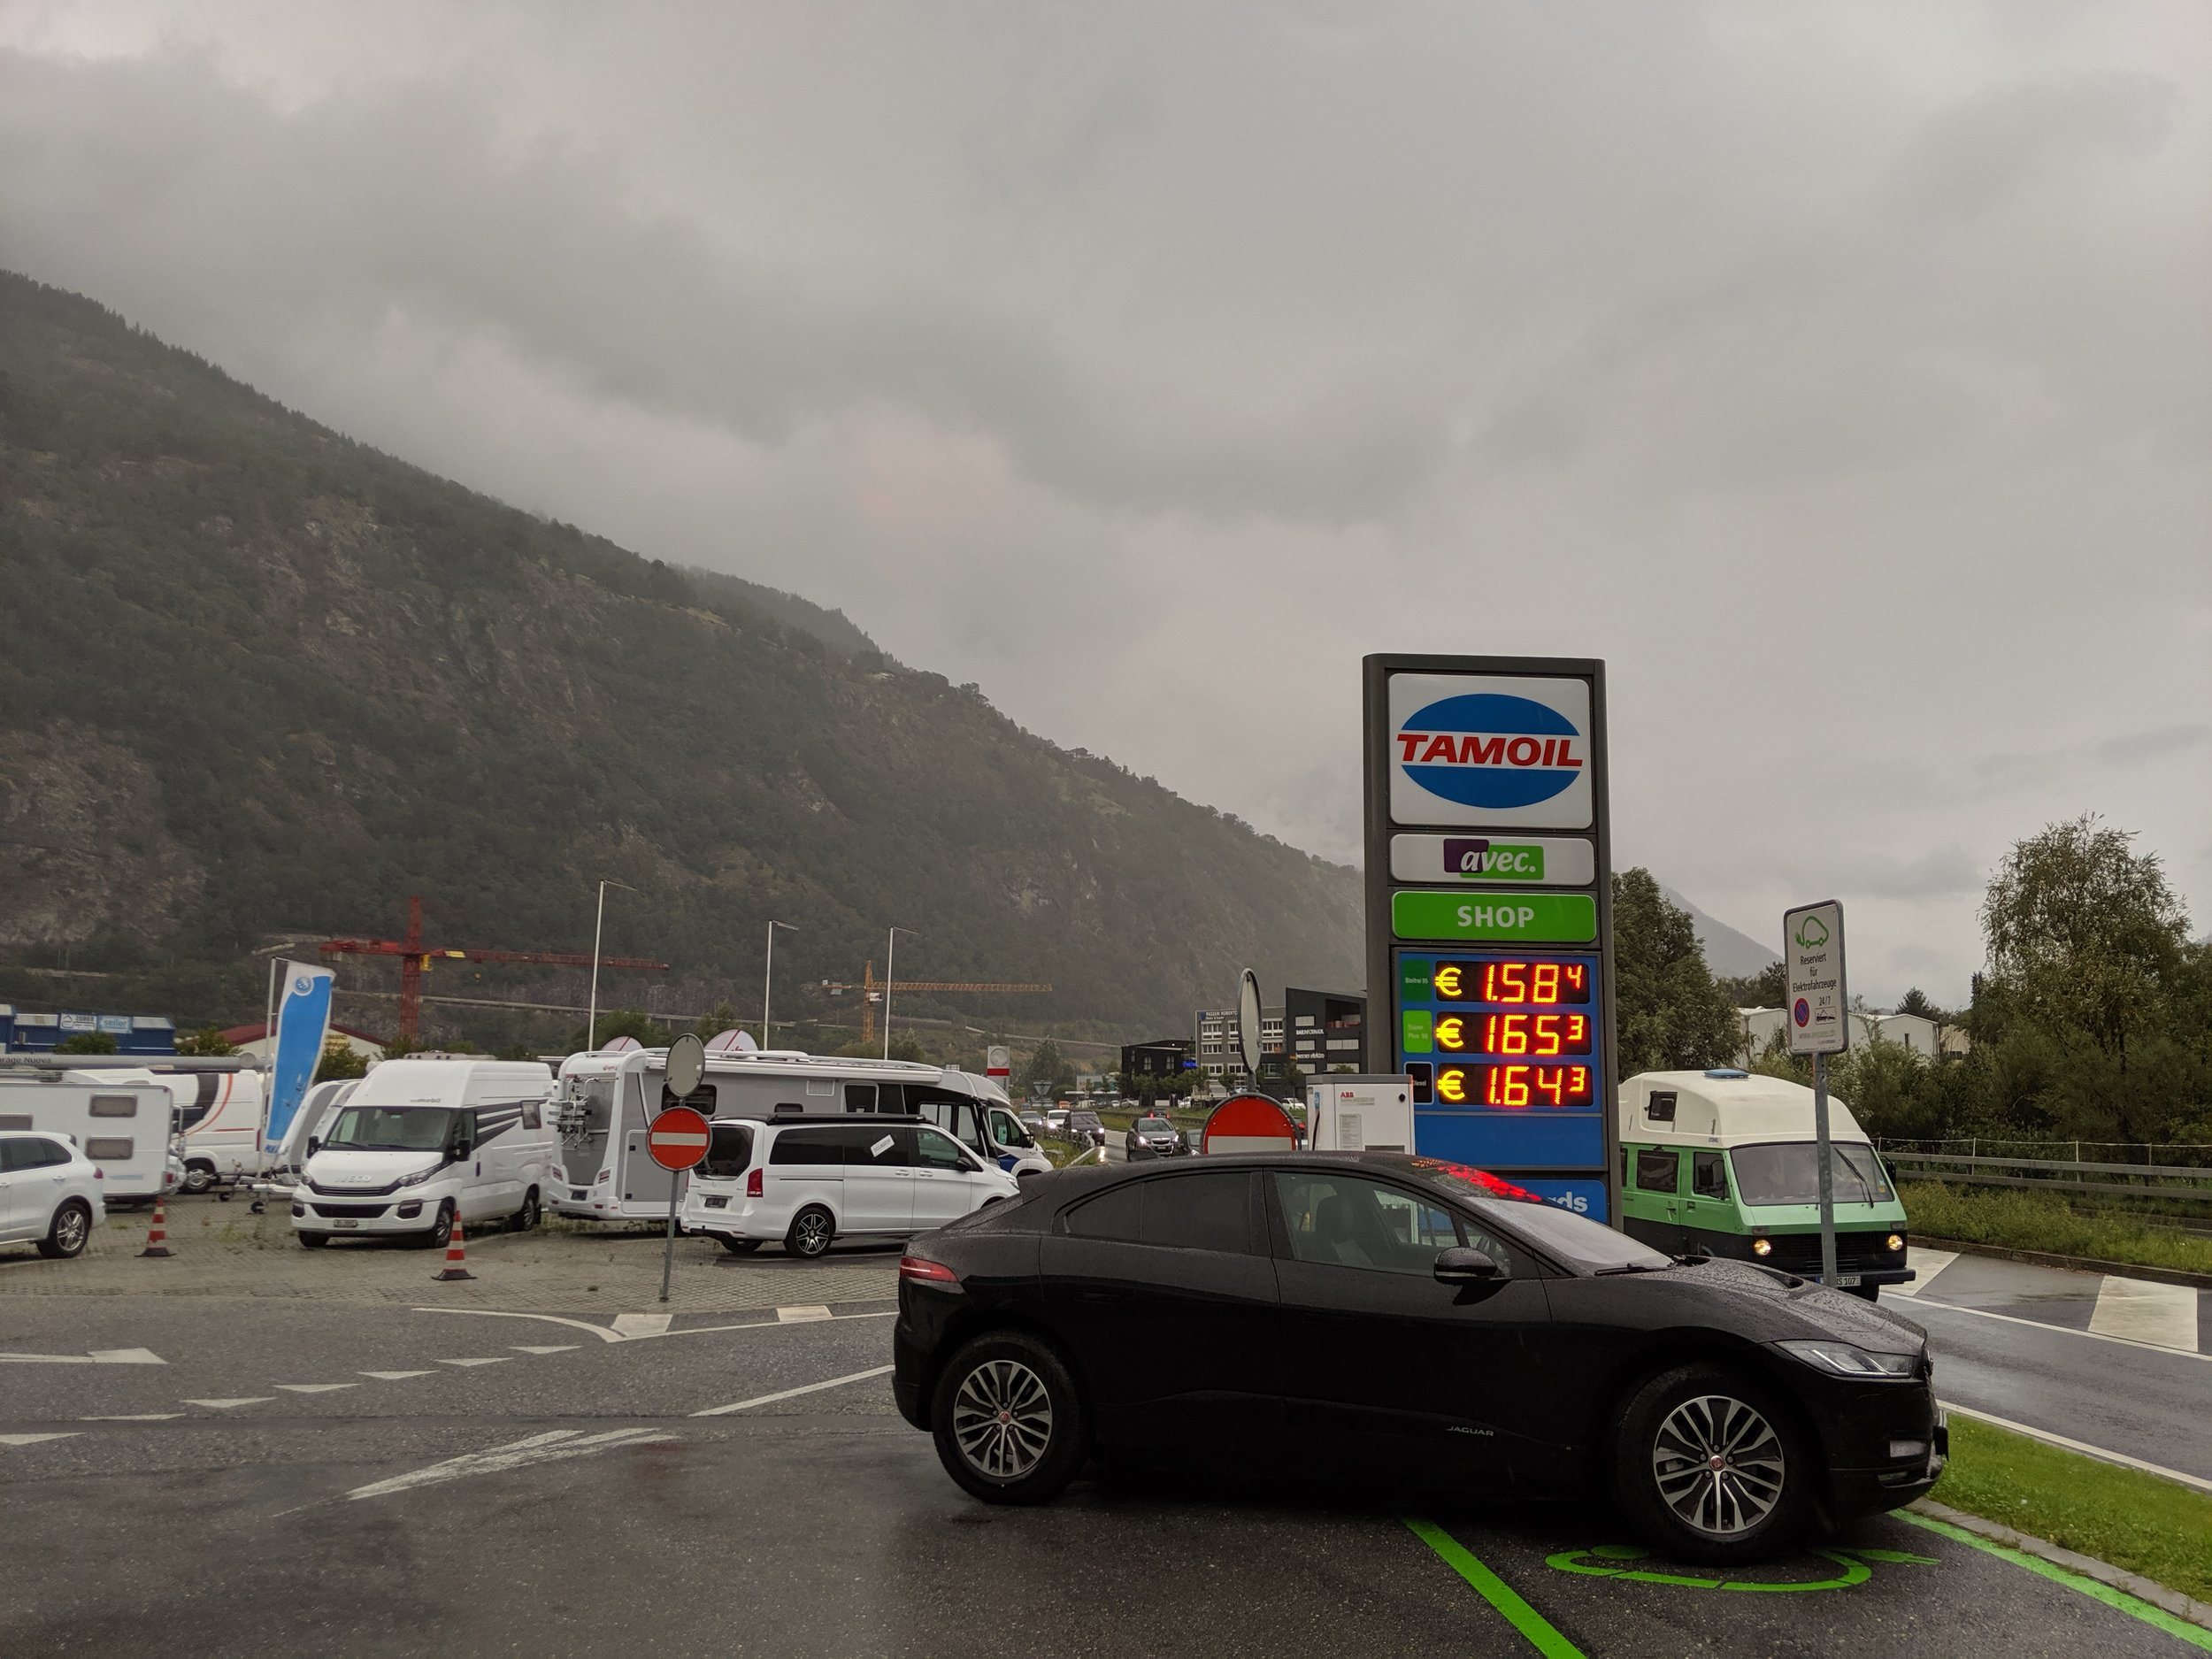 The  local Tamoil in Brig  has a perfectly working 50kW charger.